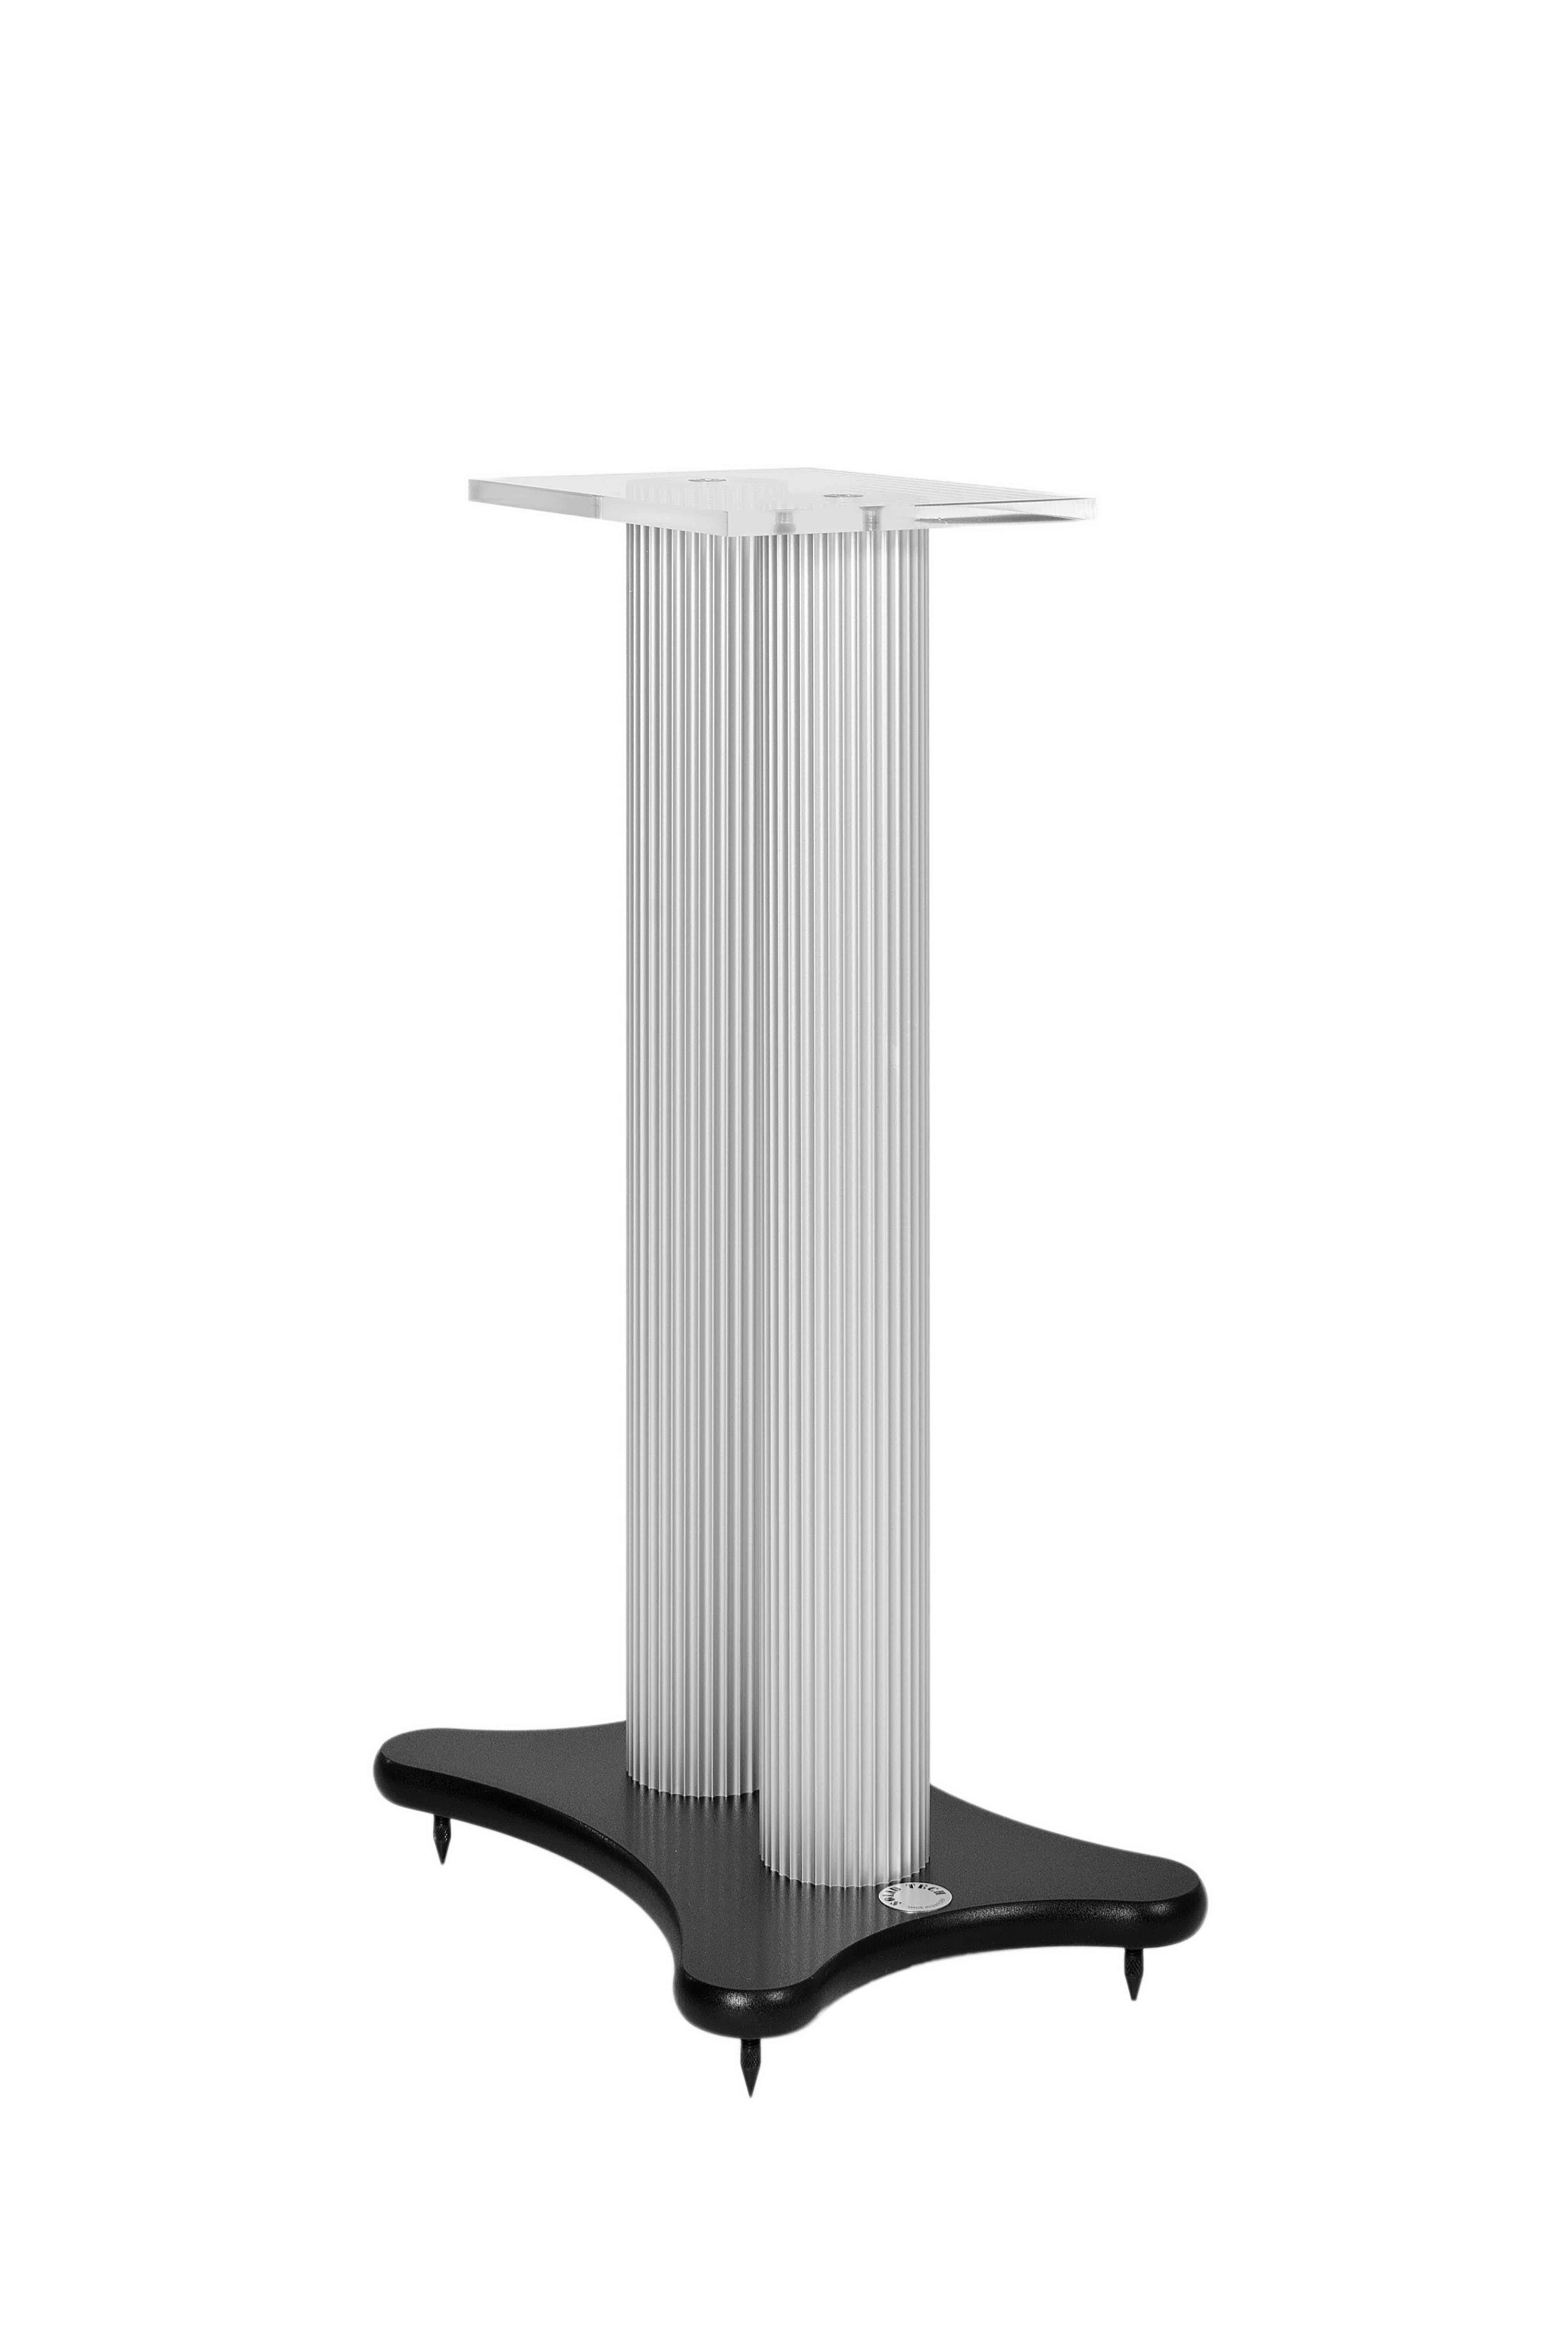 Speakerstand black fot and white pillars Image